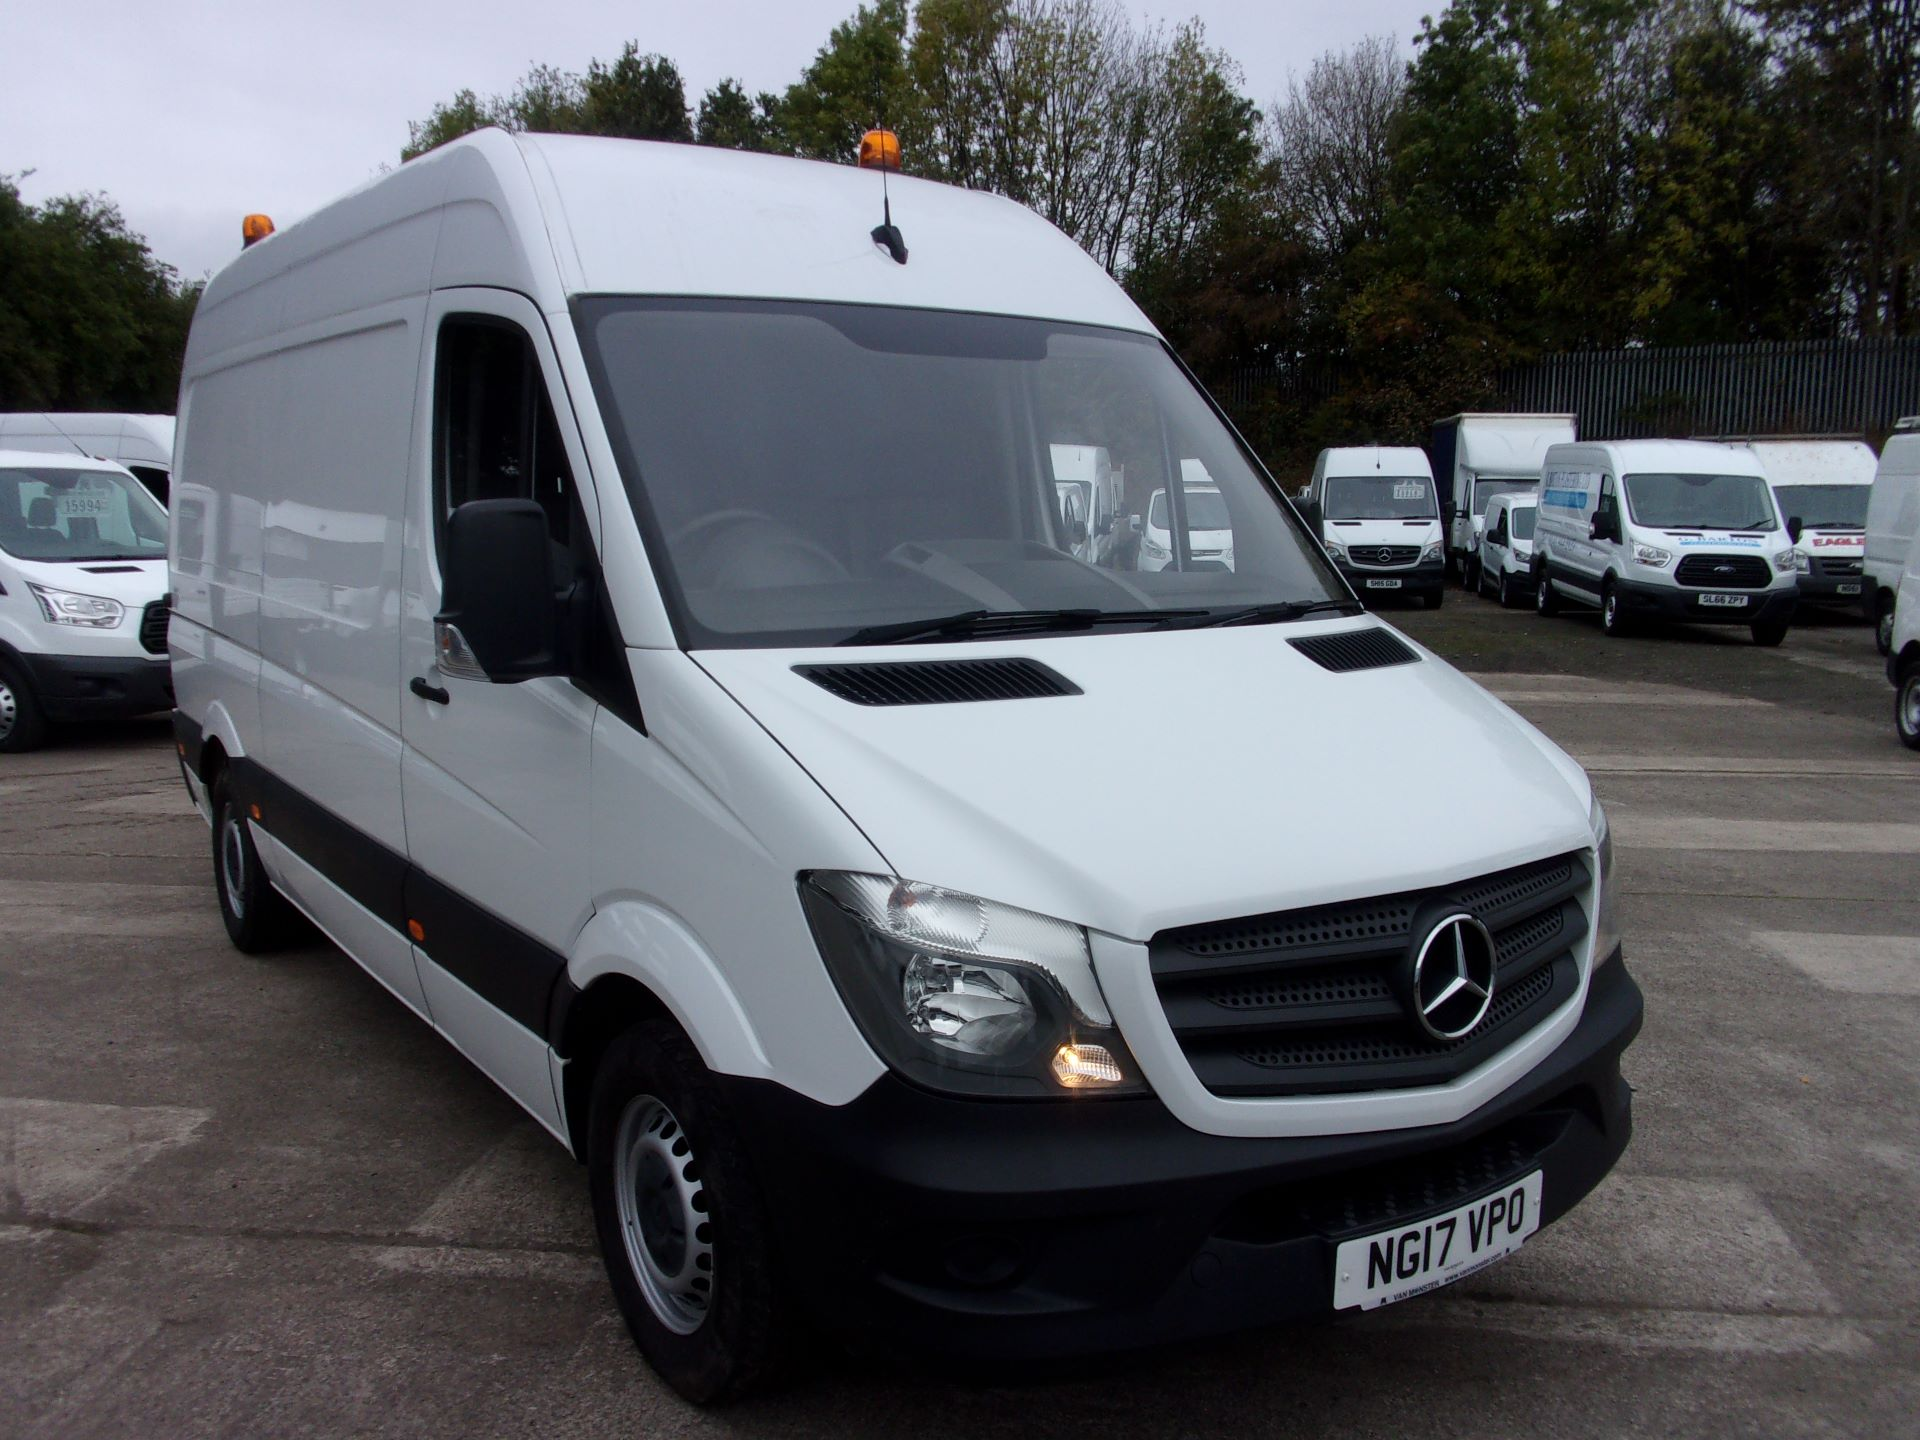 2017 Mercedes-Benz Sprinter 314 CDI MWB HIGH ROOF EURO 6 (NG17VPO)